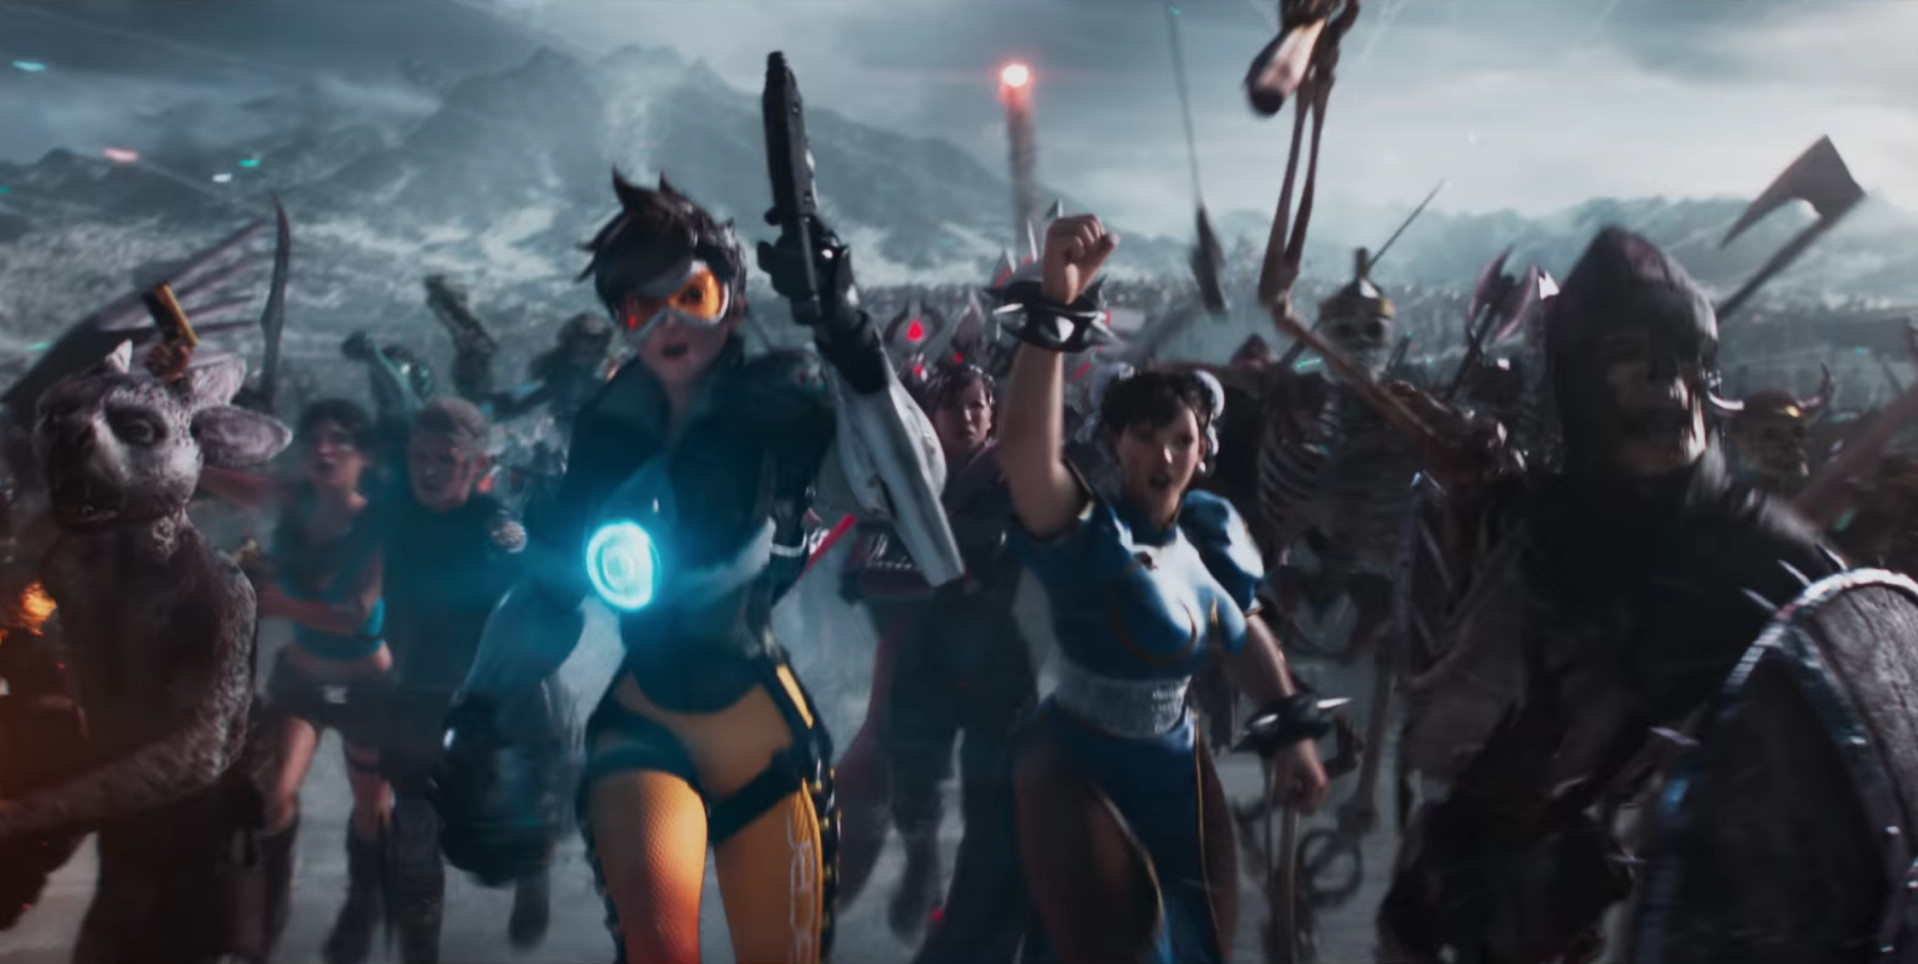 tracer and chun li in ready player one